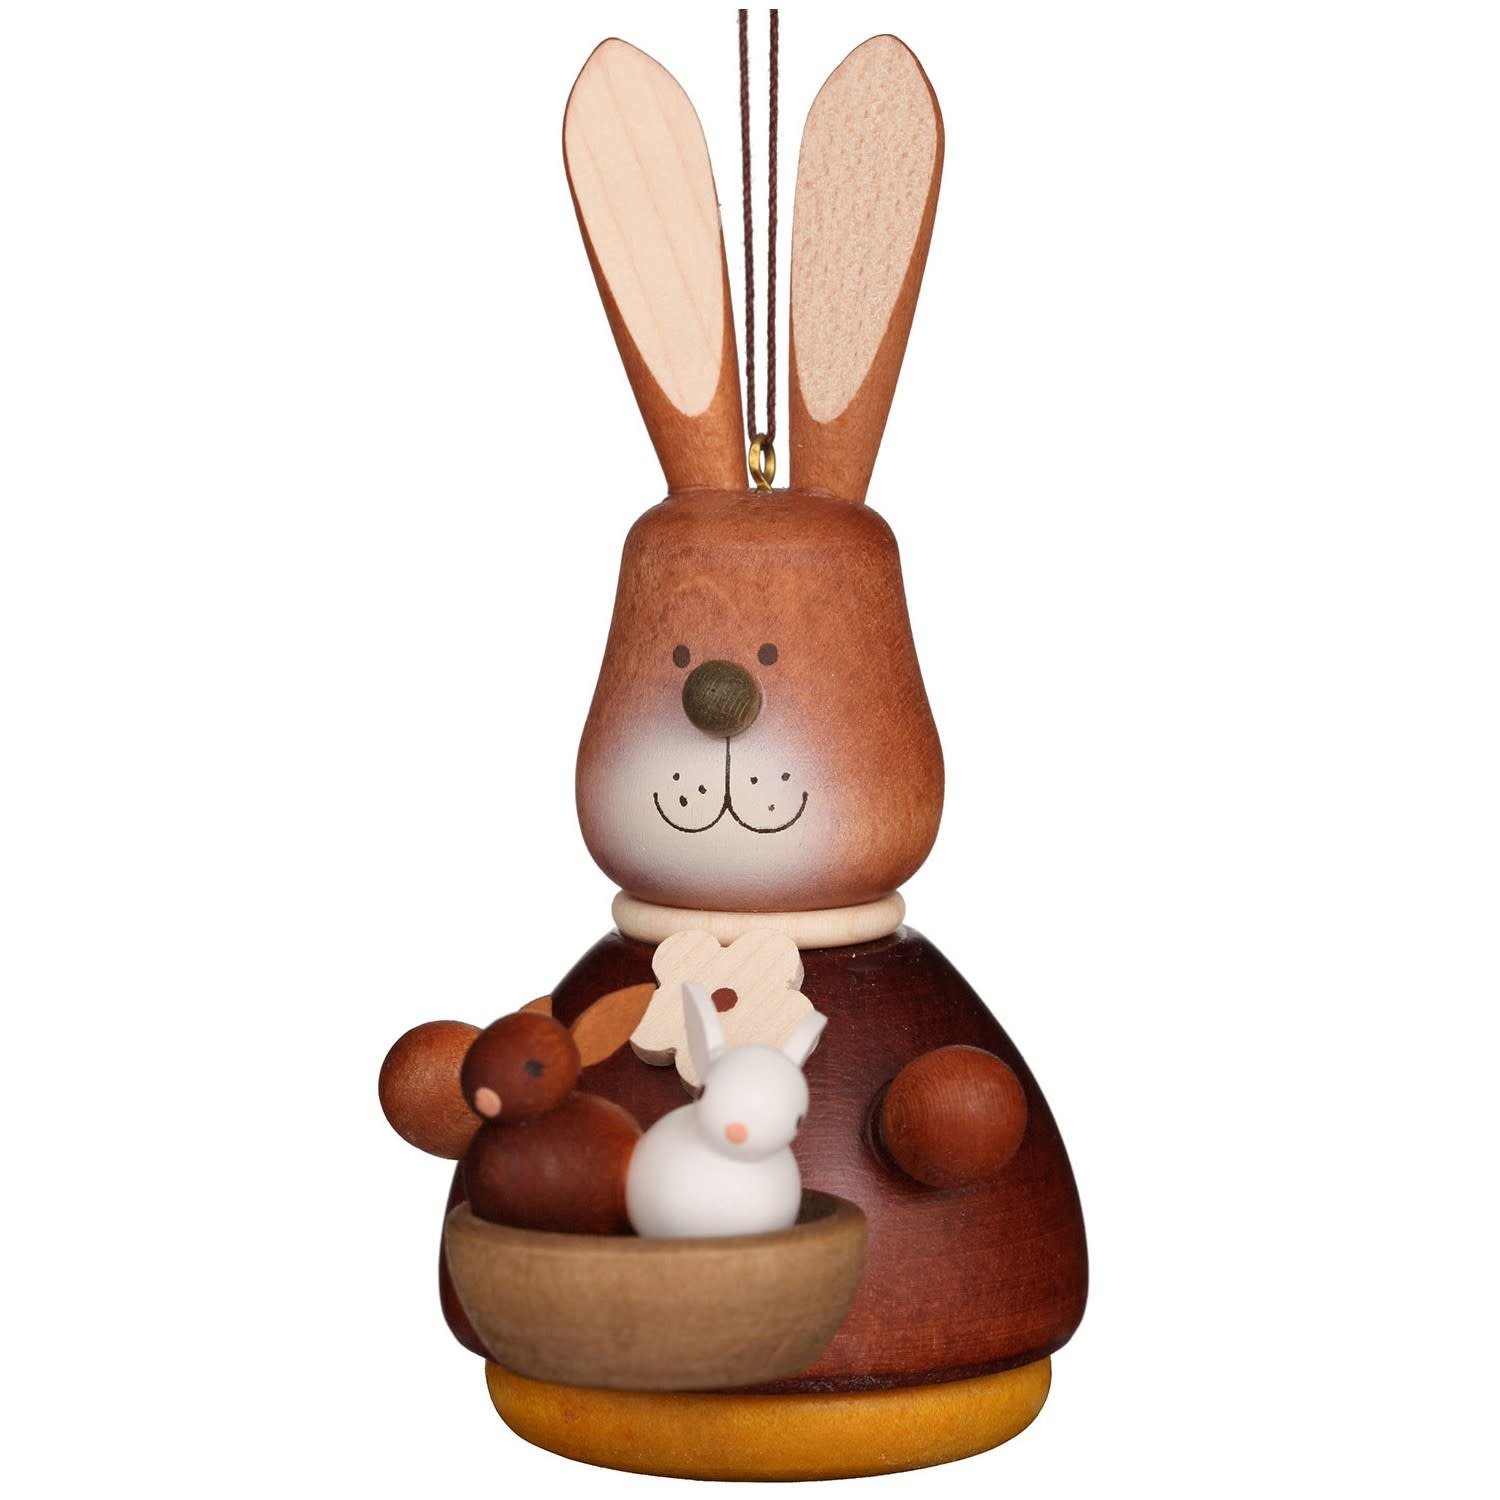 15-0210  Ulbricht Ornament-Bunny with Baby Ornament (Wobble)